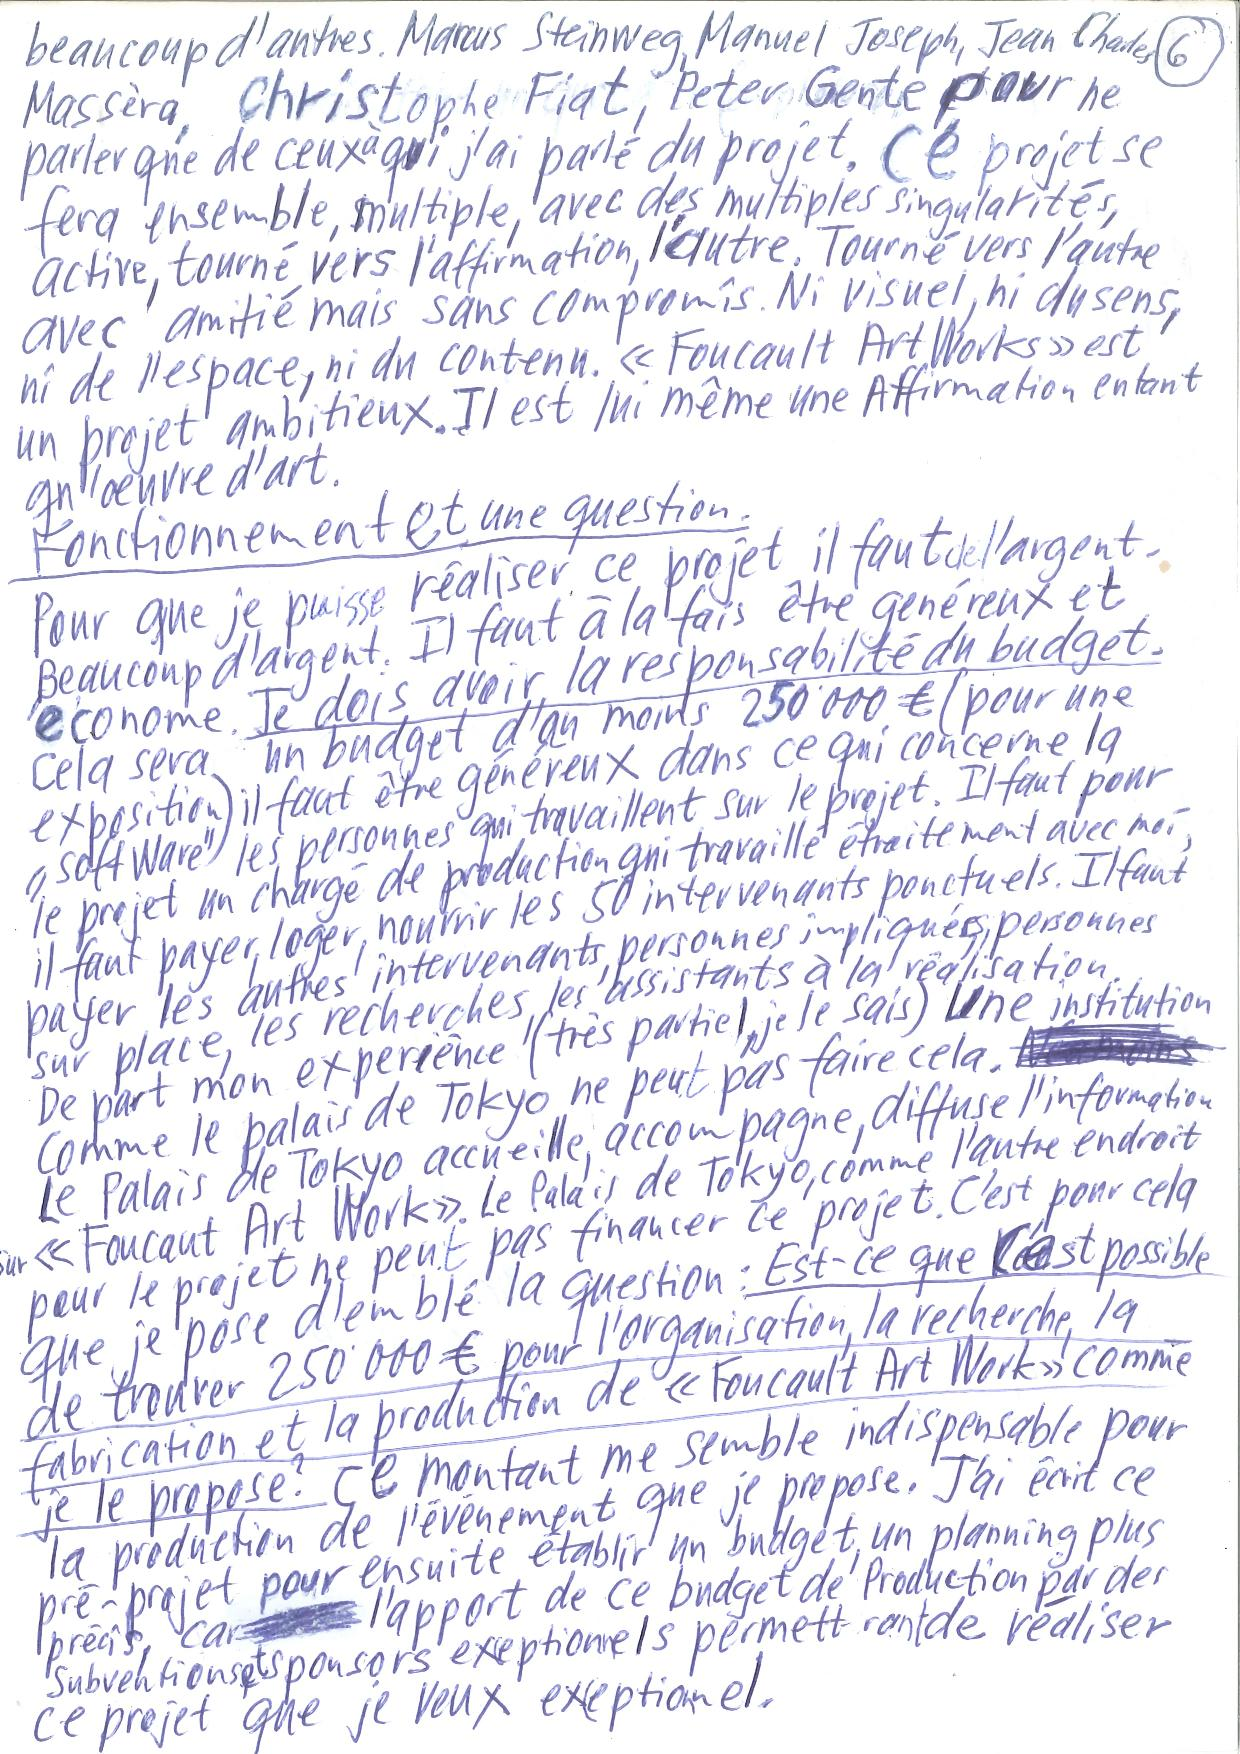 24H-Foucault_Note d'intention_2004 (7)